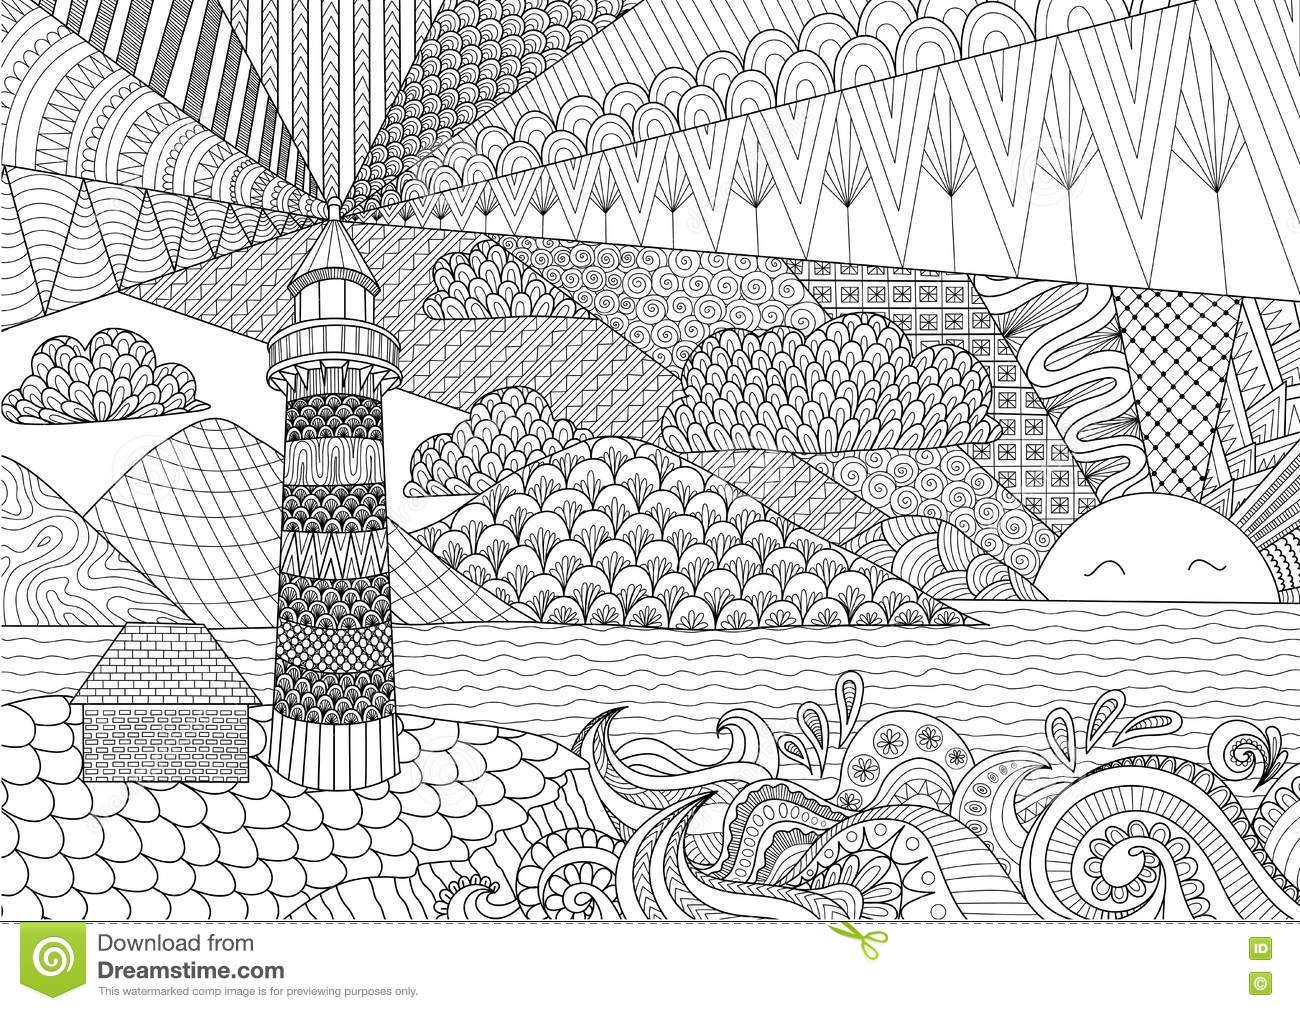 Seascape Line Art Design For Coloring Book For Adult Anti Stress